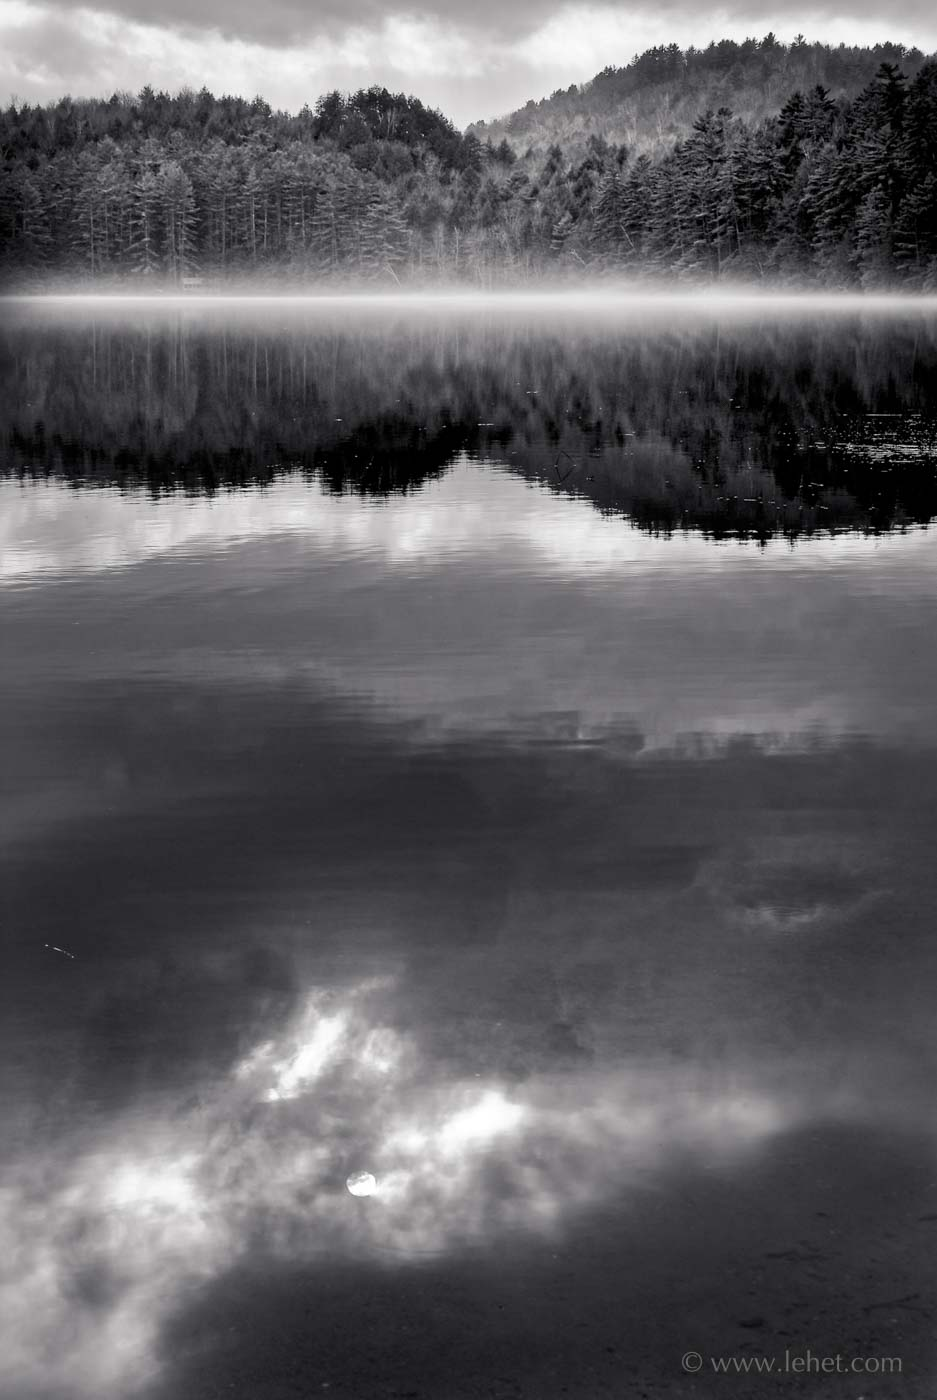 post pond misty waterline, cloud reflections and hills, black and white